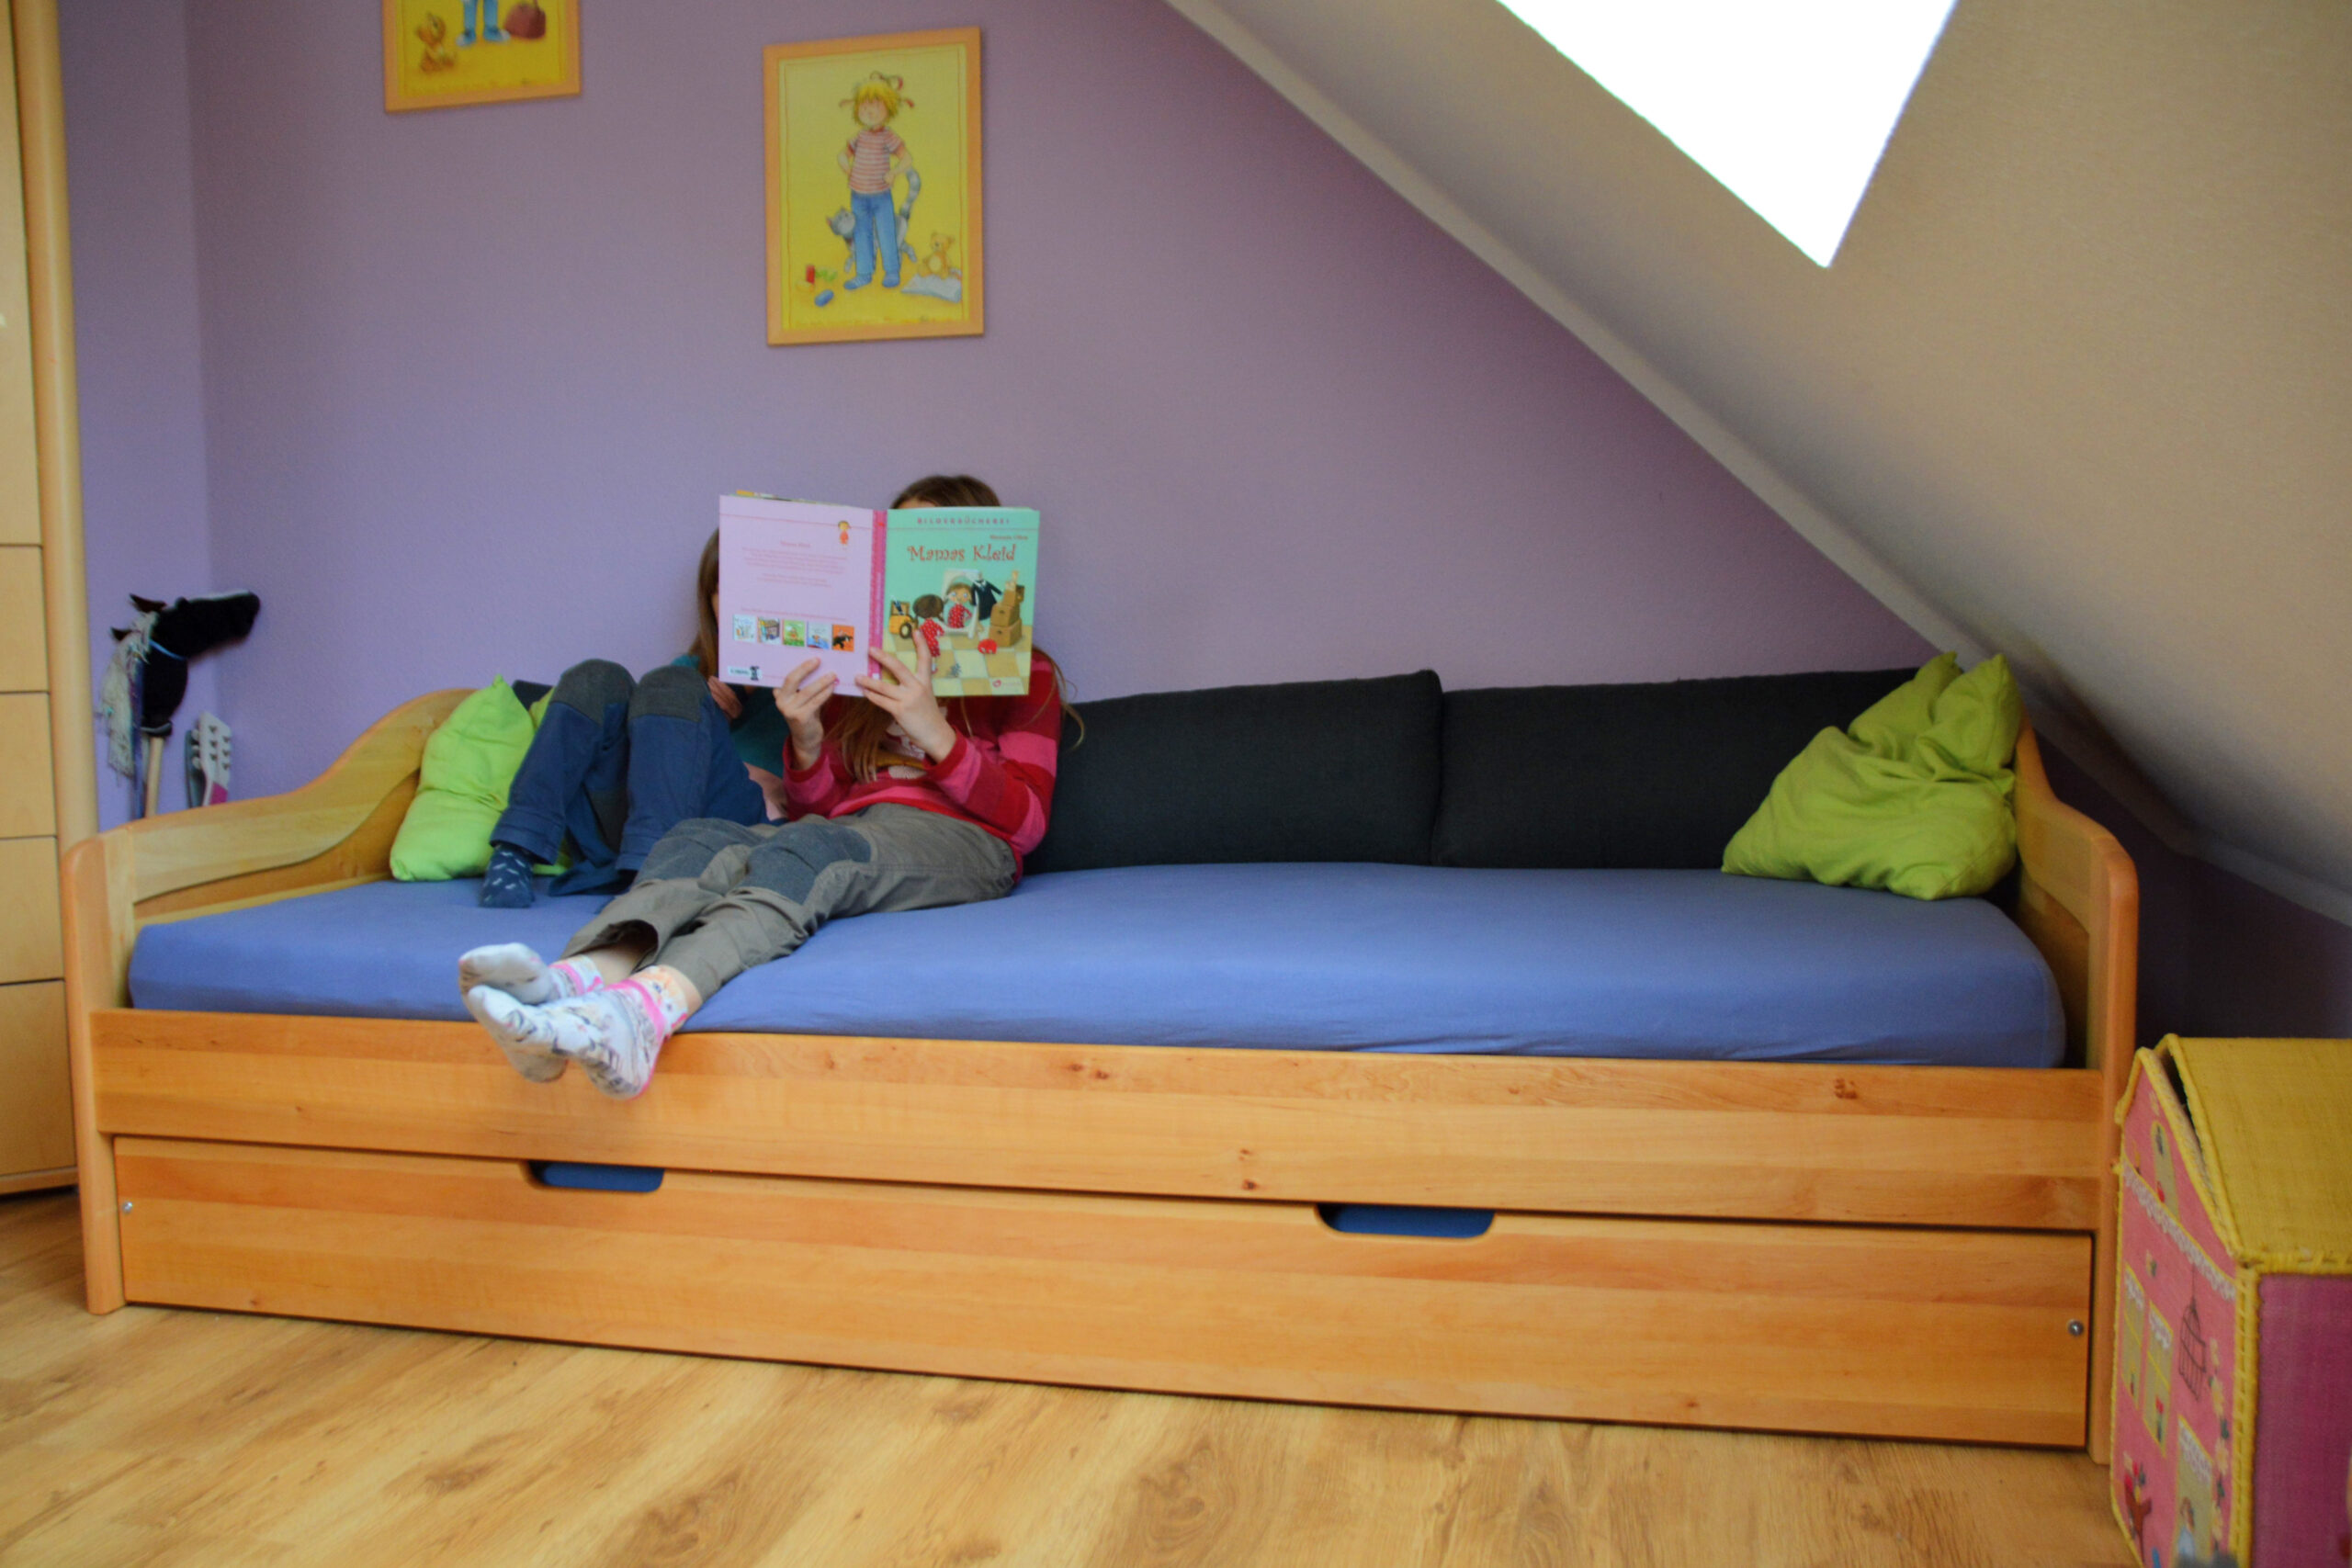 Full Size of Abenteuer Im Kinderzimmer Zum Ersten Mal Ber Nacht Zu Besuch Impressionen Sofa Mit Relaxfunktion Elektrisch Innovation Berlin Hersteller Big Kolonialstil In L Sofa Sofa Kinderzimmer